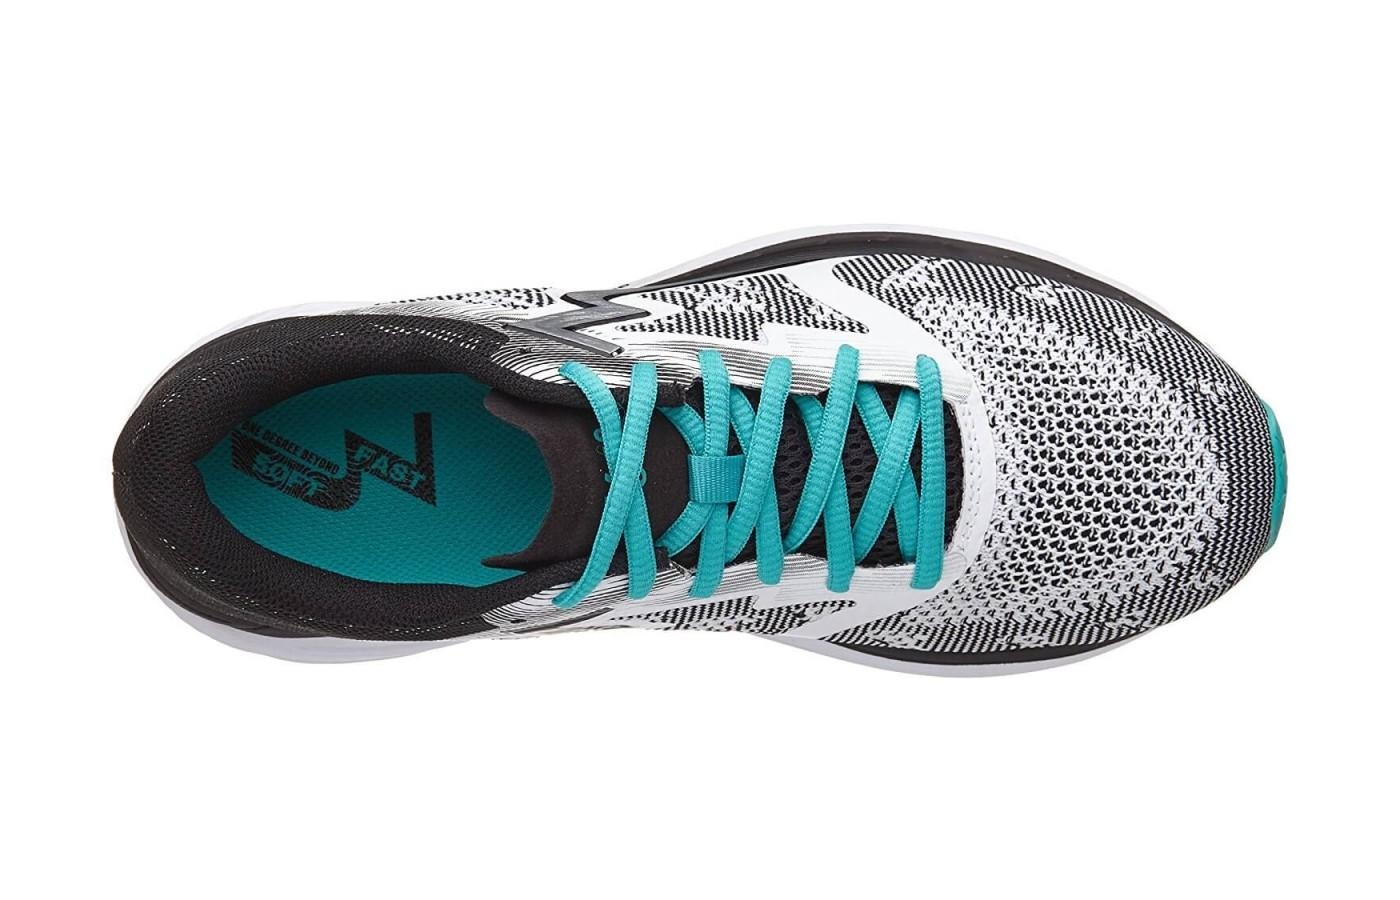 the spinject features a knit mesh upper